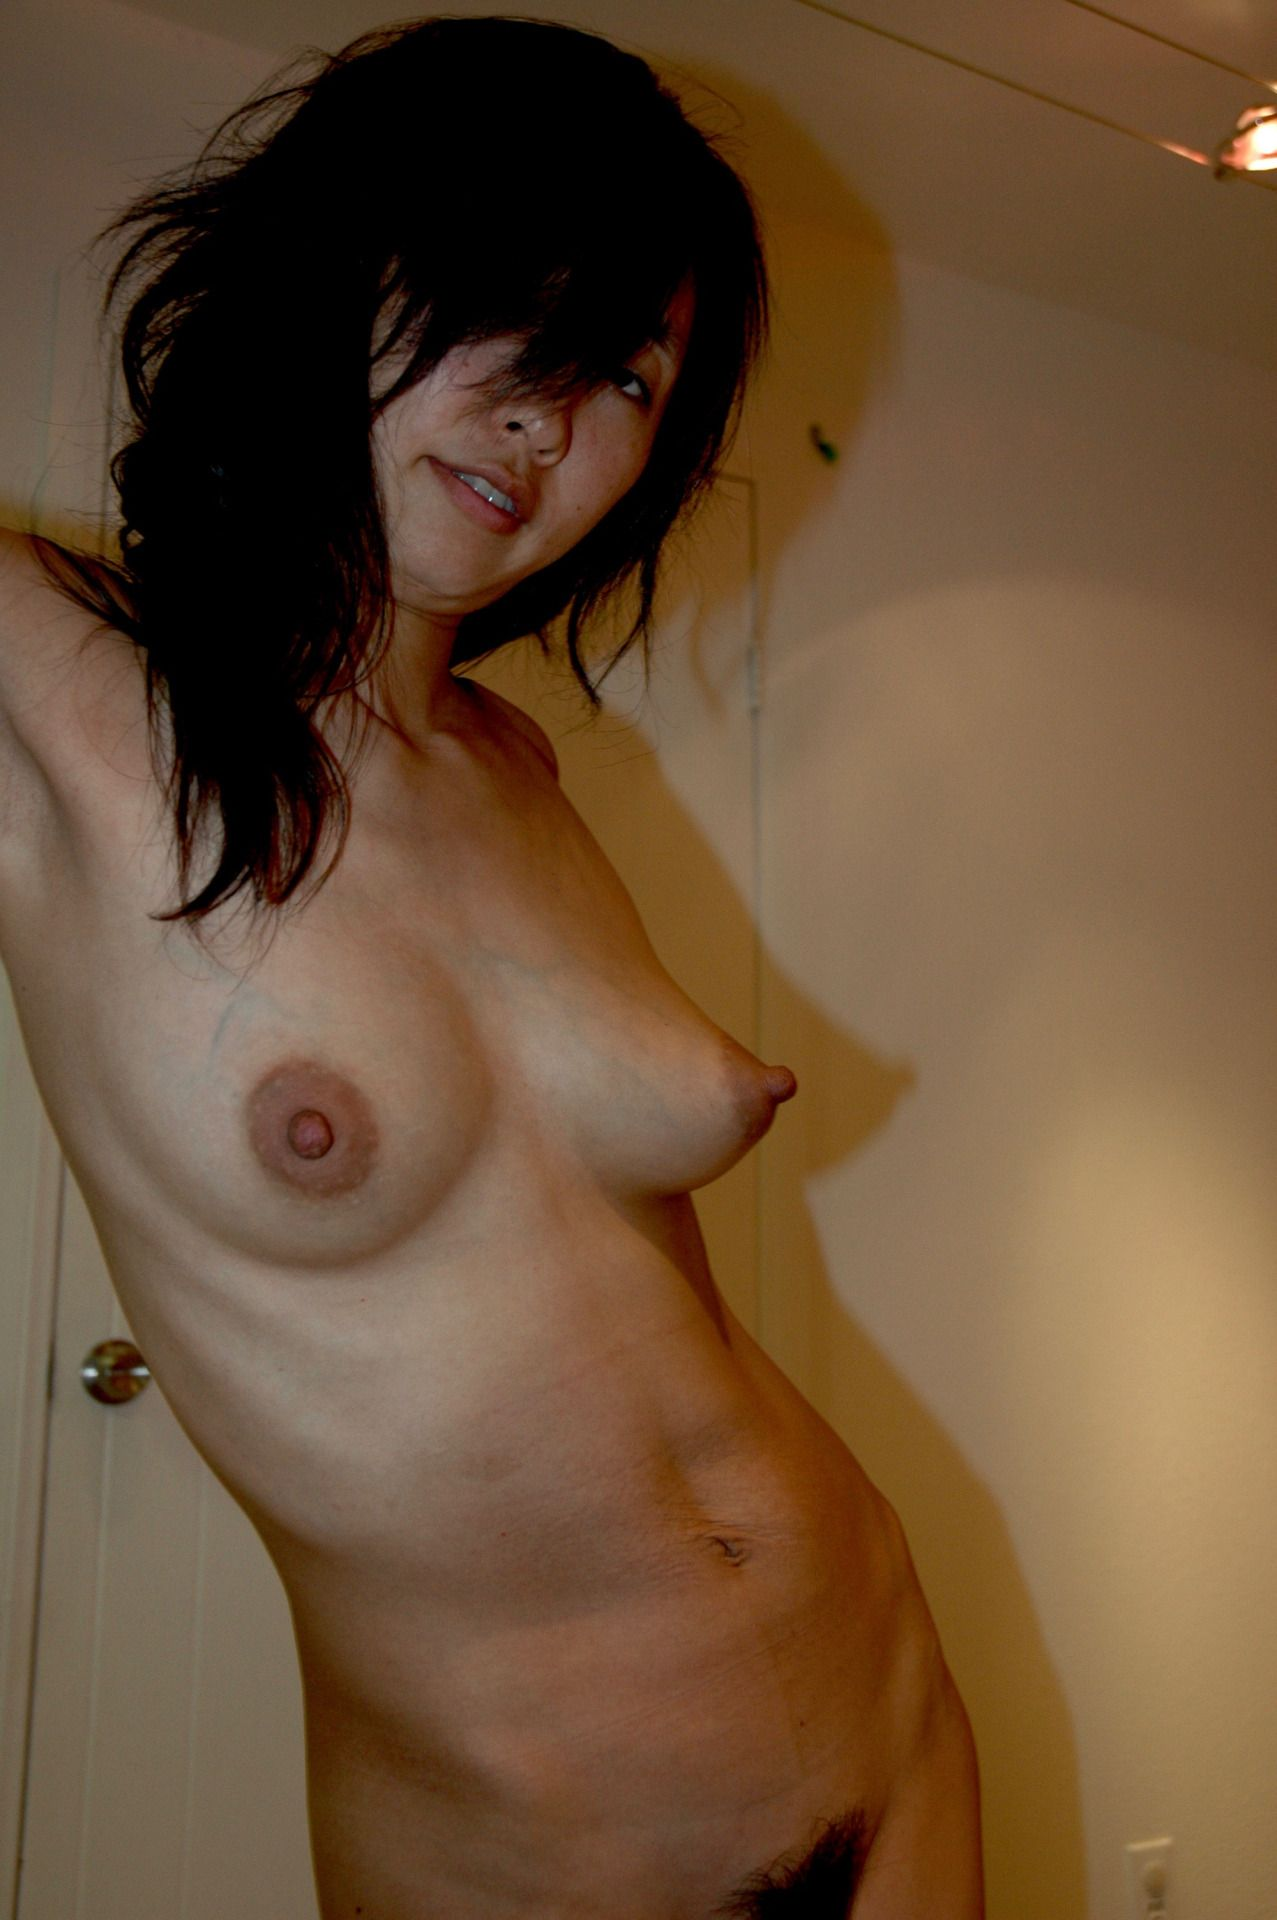 big pointy breasts naked pics